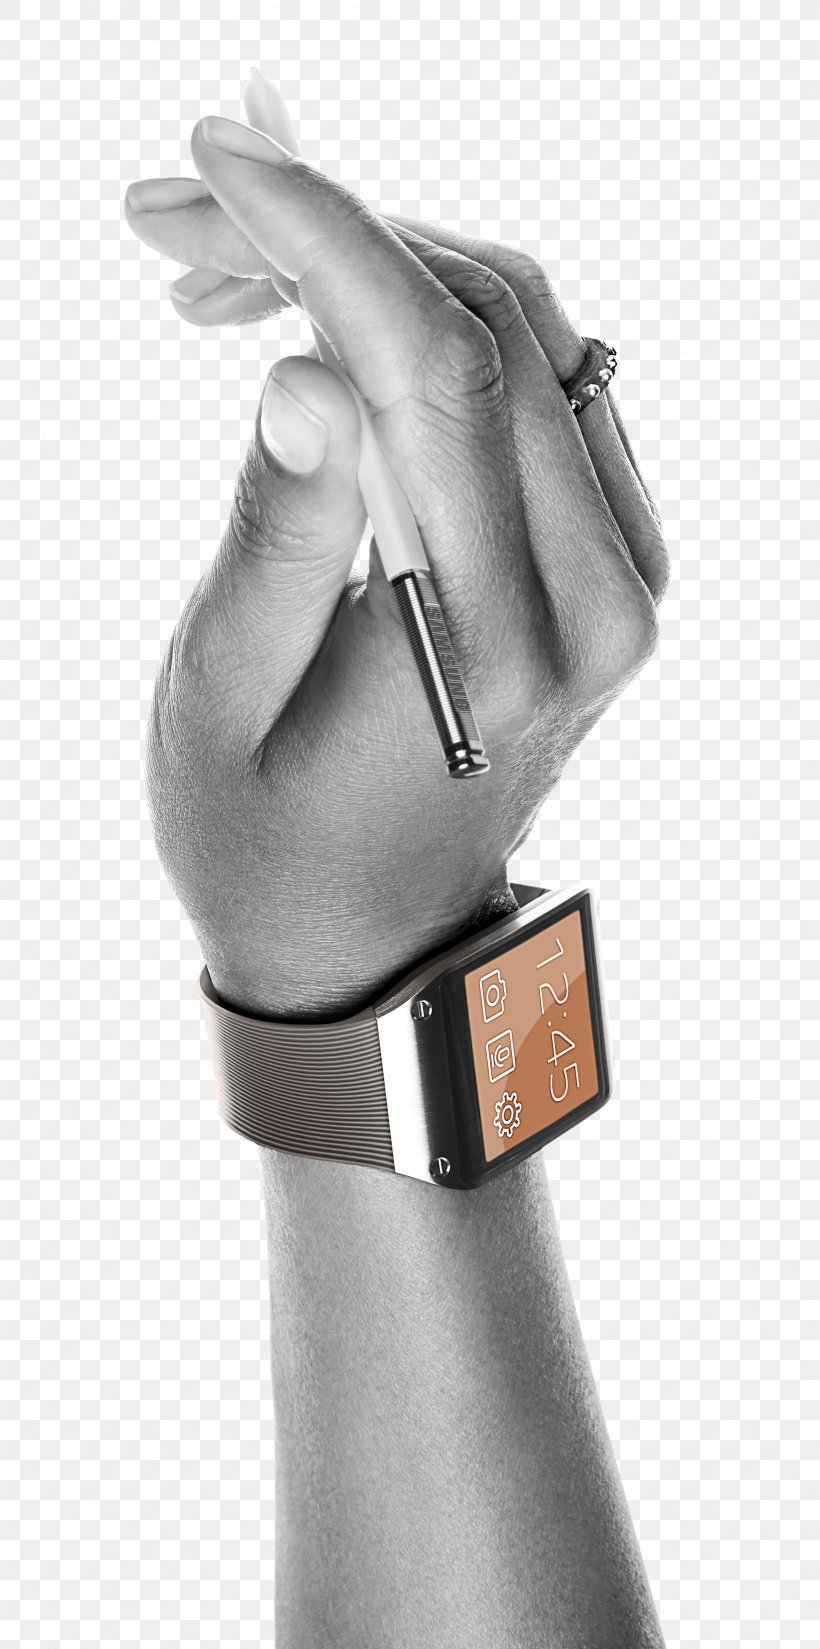 Samsung Galaxy Note 3 Samsung Galaxy Note 10.1 Samsung Galaxy Gear Smartphone Smartwatch, PNG, 2354x4735px, Samsung Galaxy Note 3, Arm, Black And White, Finger, Hand Download Free